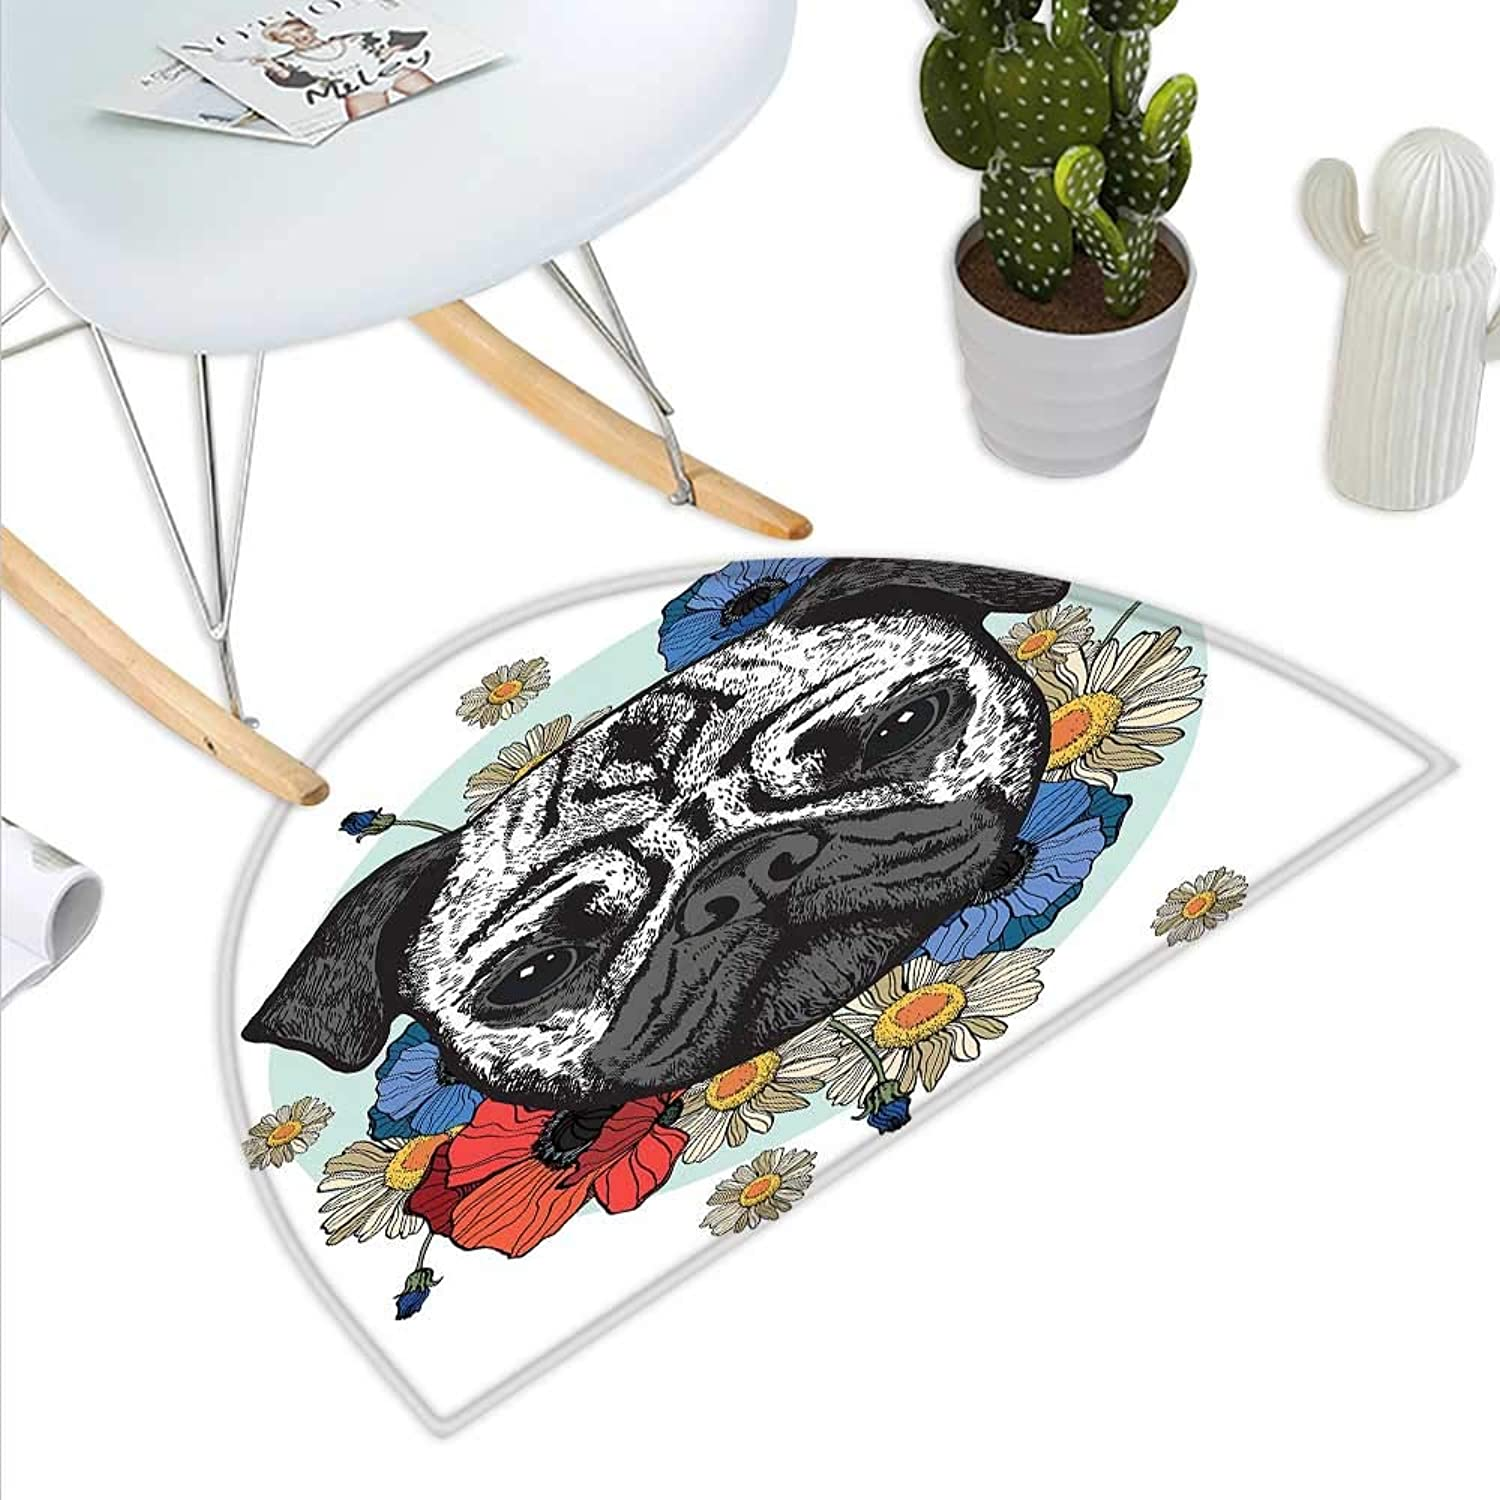 Pug Semicircle Doormat Black and White Head of a Pug on Floral Arrangement with Beautiful Flowers Daisies Halfmoon doormats H 43.3  xD 64.9  Red bluee Black